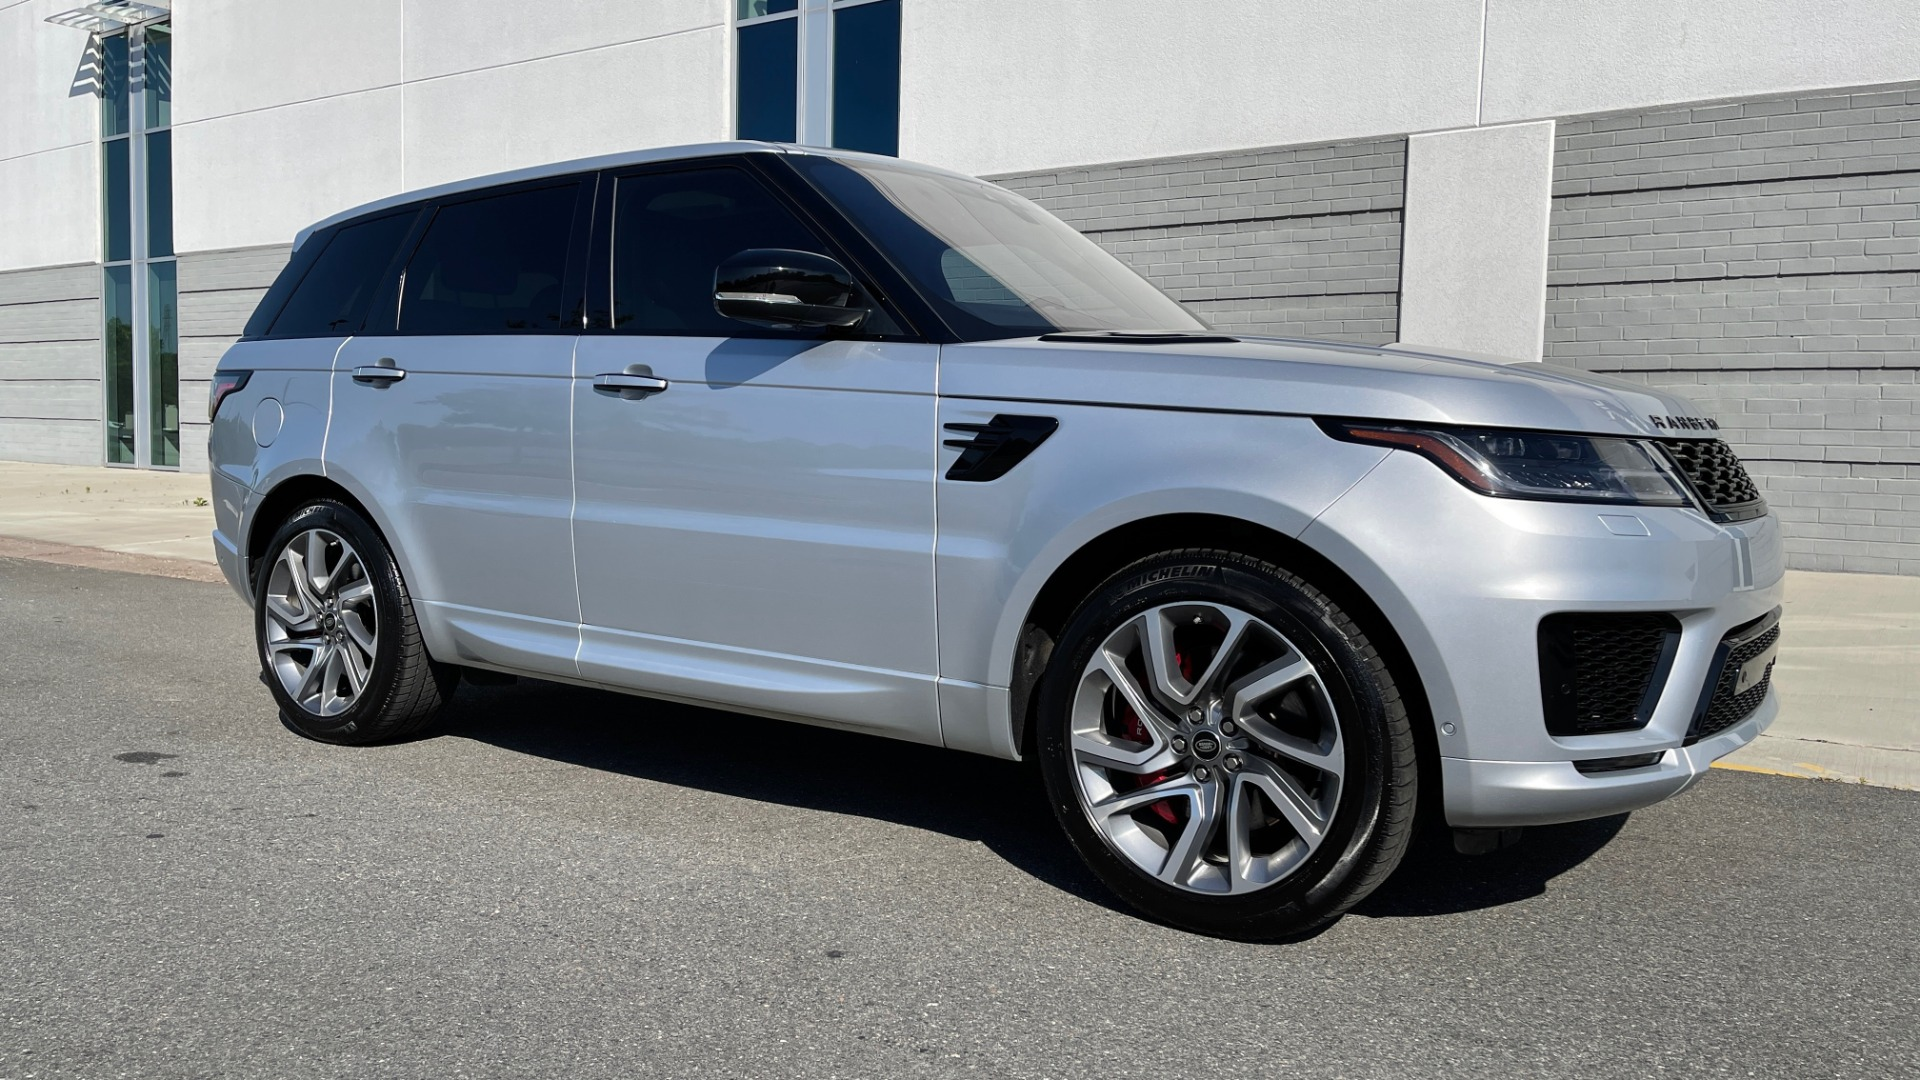 Used 2019 Land Rover RANGE ROVER SPORT HSE DYNAMIC / 3.0L SC V6 / 8-SPD / APPLE / NAV / SUNROOF / REARVIEW for sale Sold at Formula Imports in Charlotte NC 28227 3